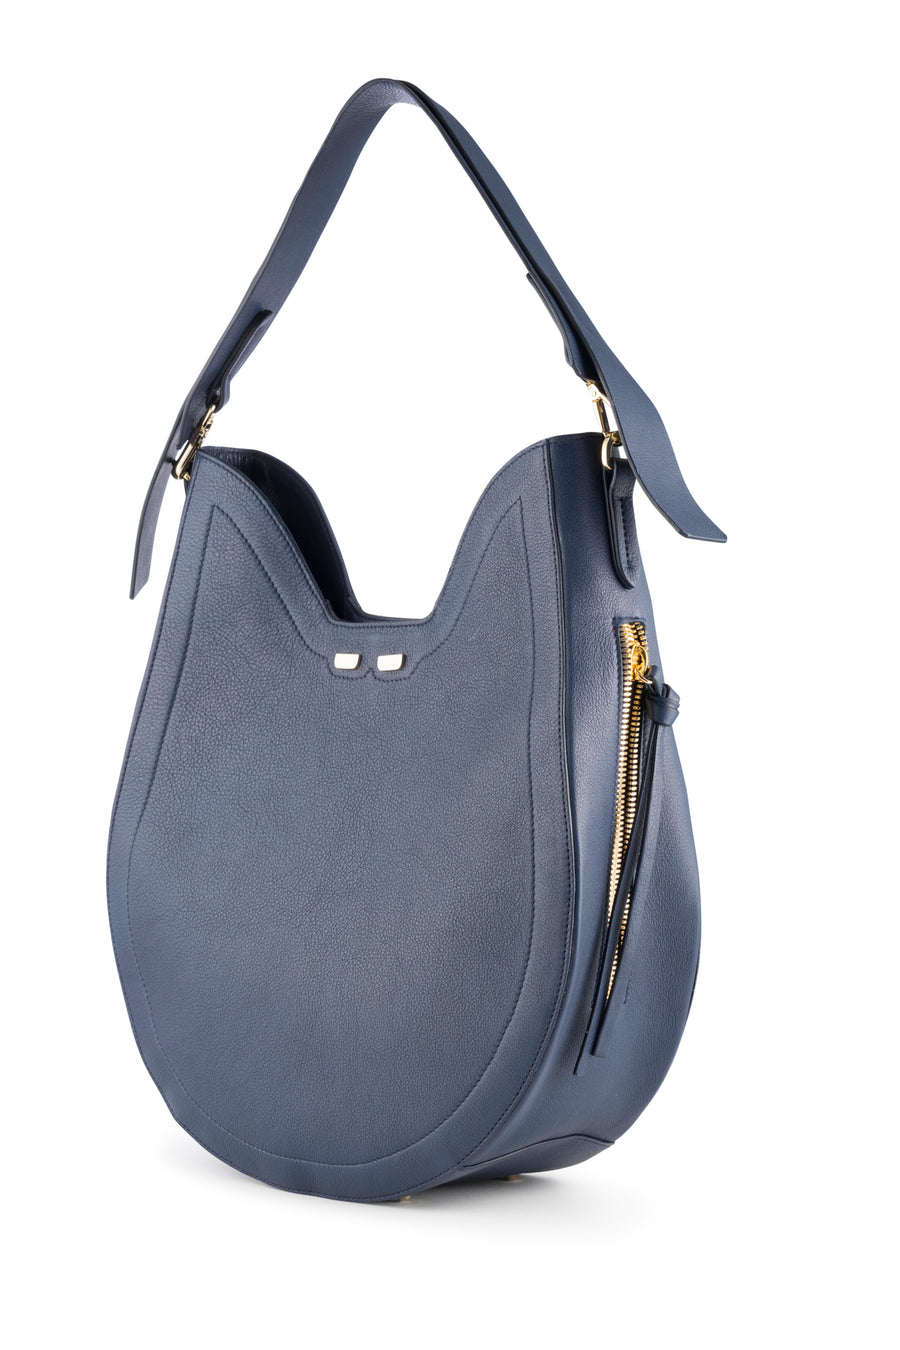 Denim Henry James Hobo - BENE Handbags